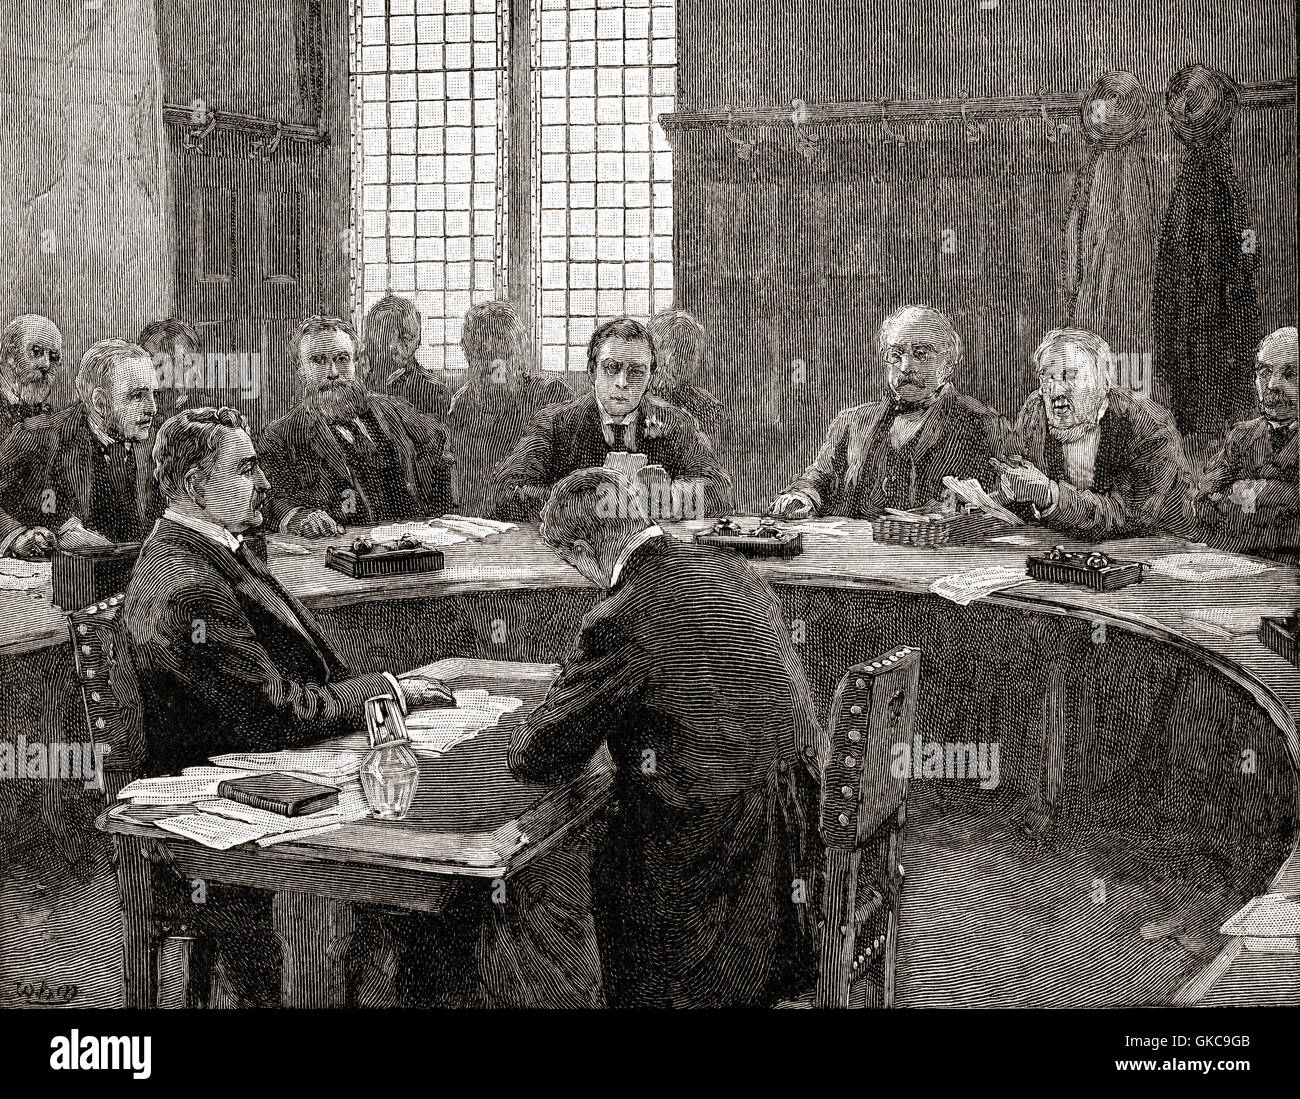 Cecil Rhodes speaking at the South Africa Committee in 1897.  Cecil John Rhodes, 1853 – 1902.  British businessman, - Stock Image